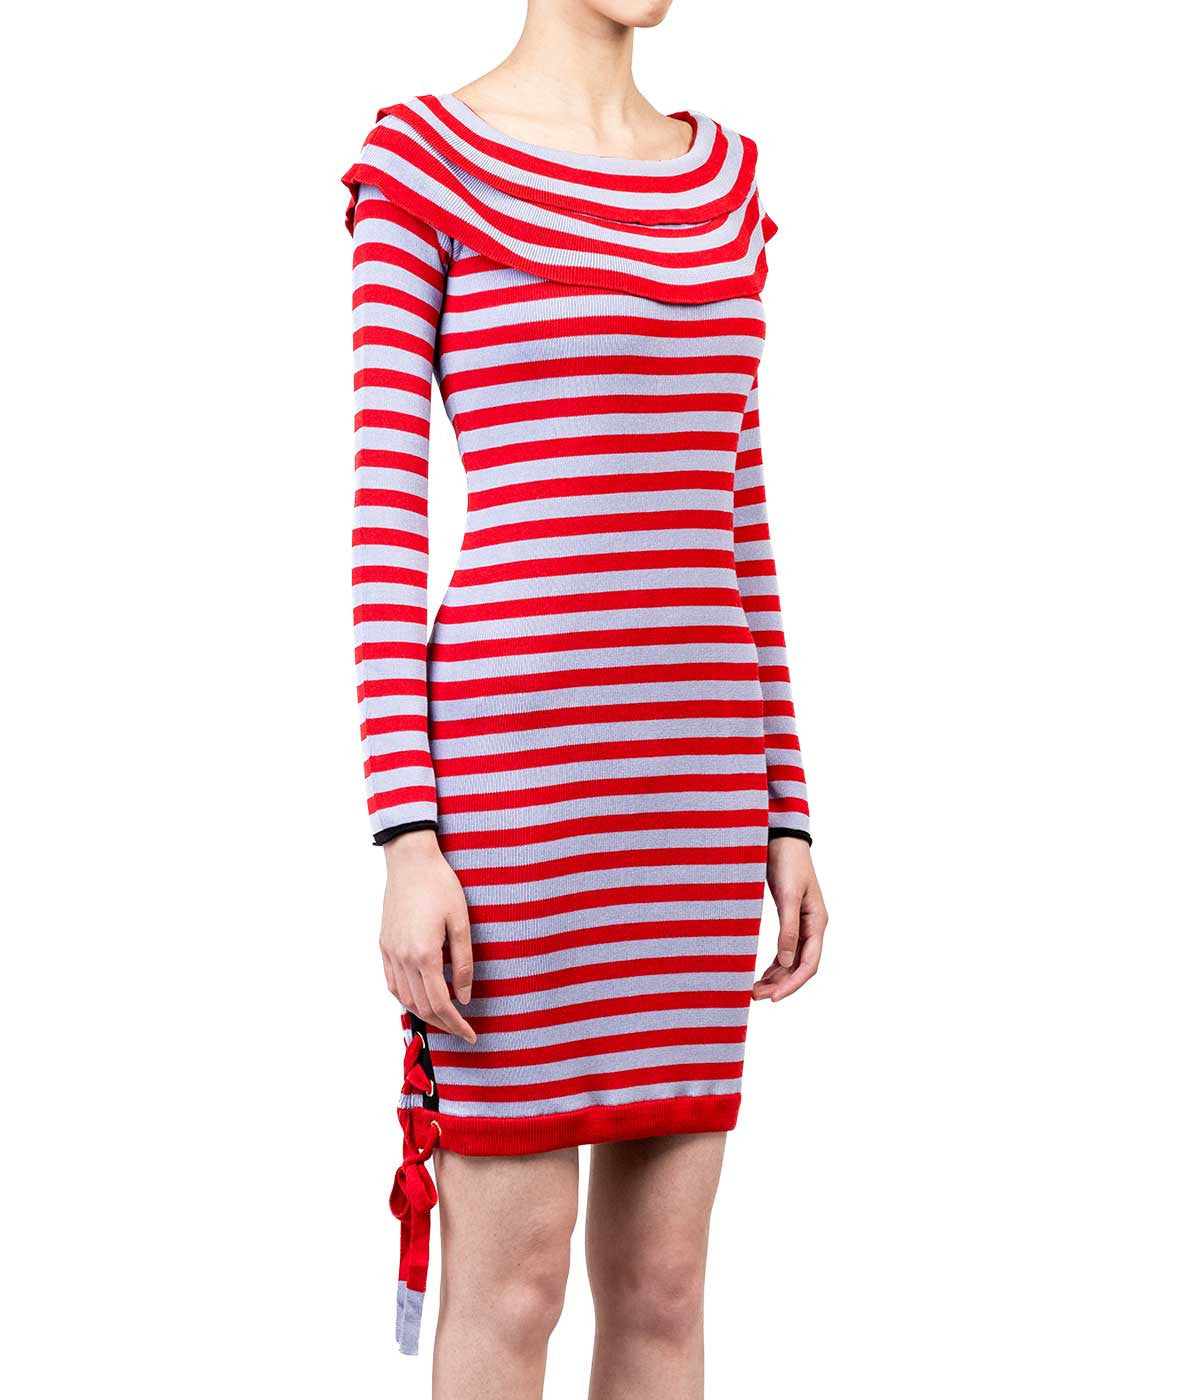 Red White Striped Embellished Cotton Dress